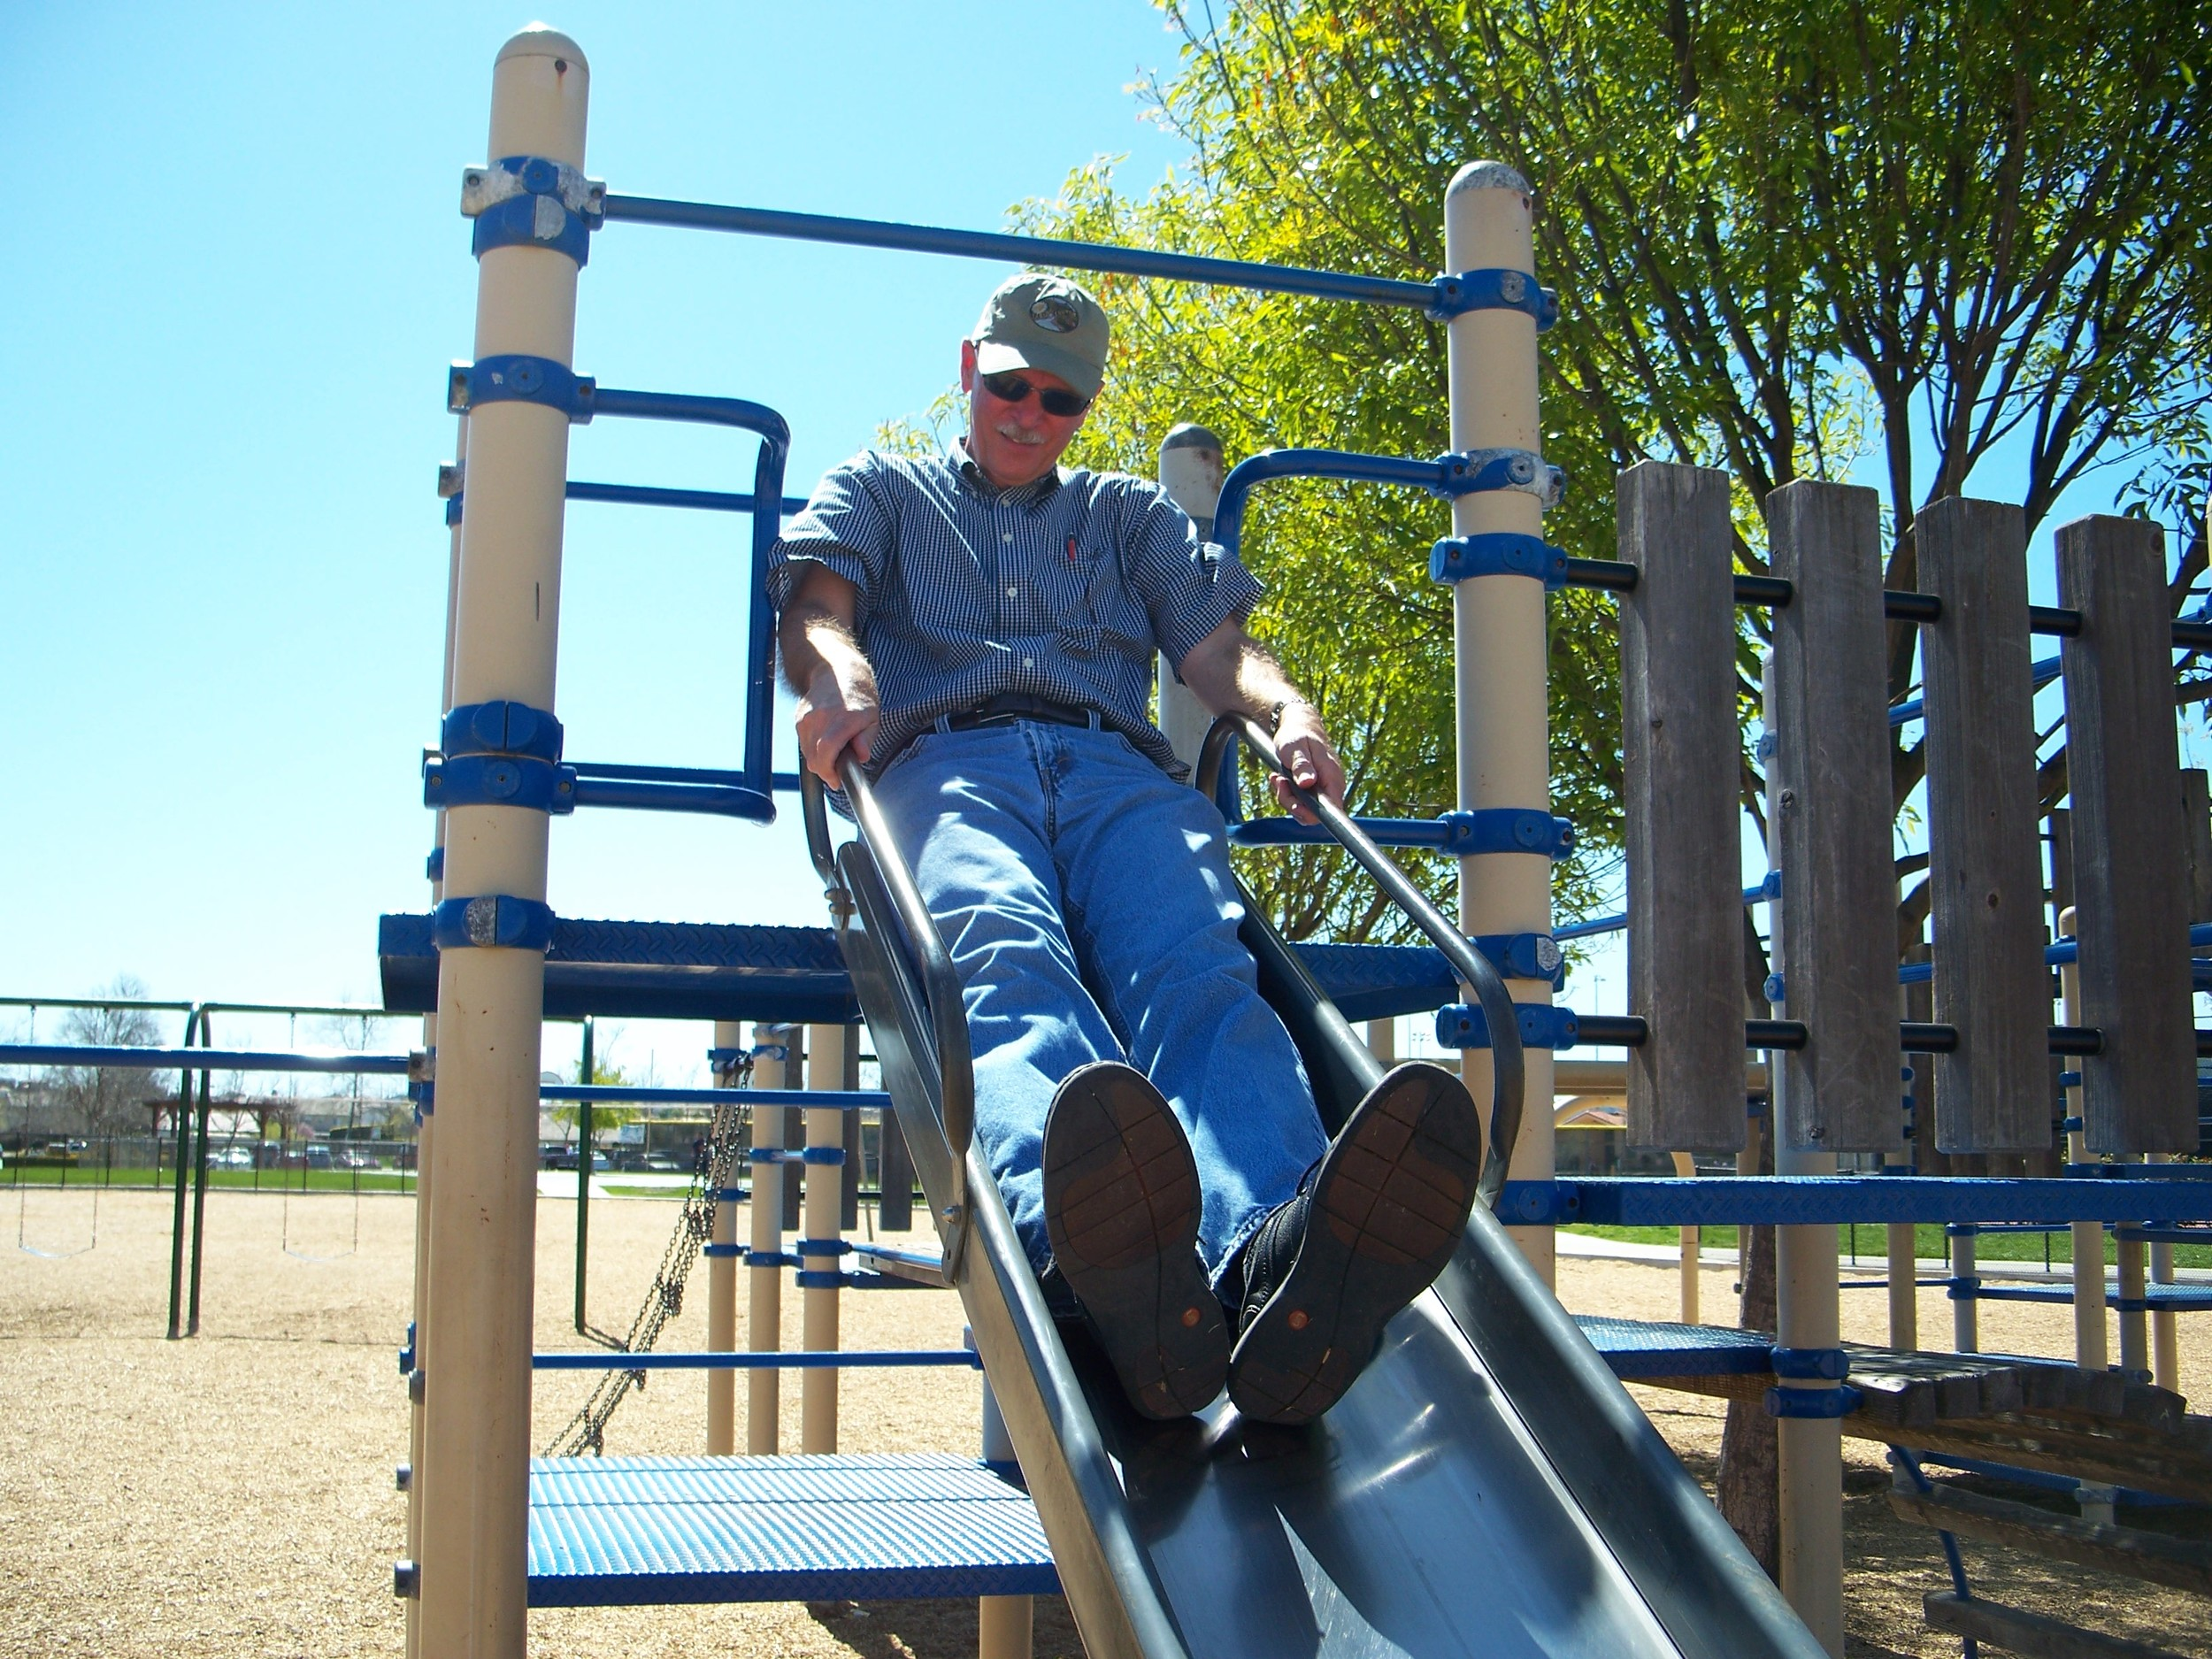 John at playground in Metafe